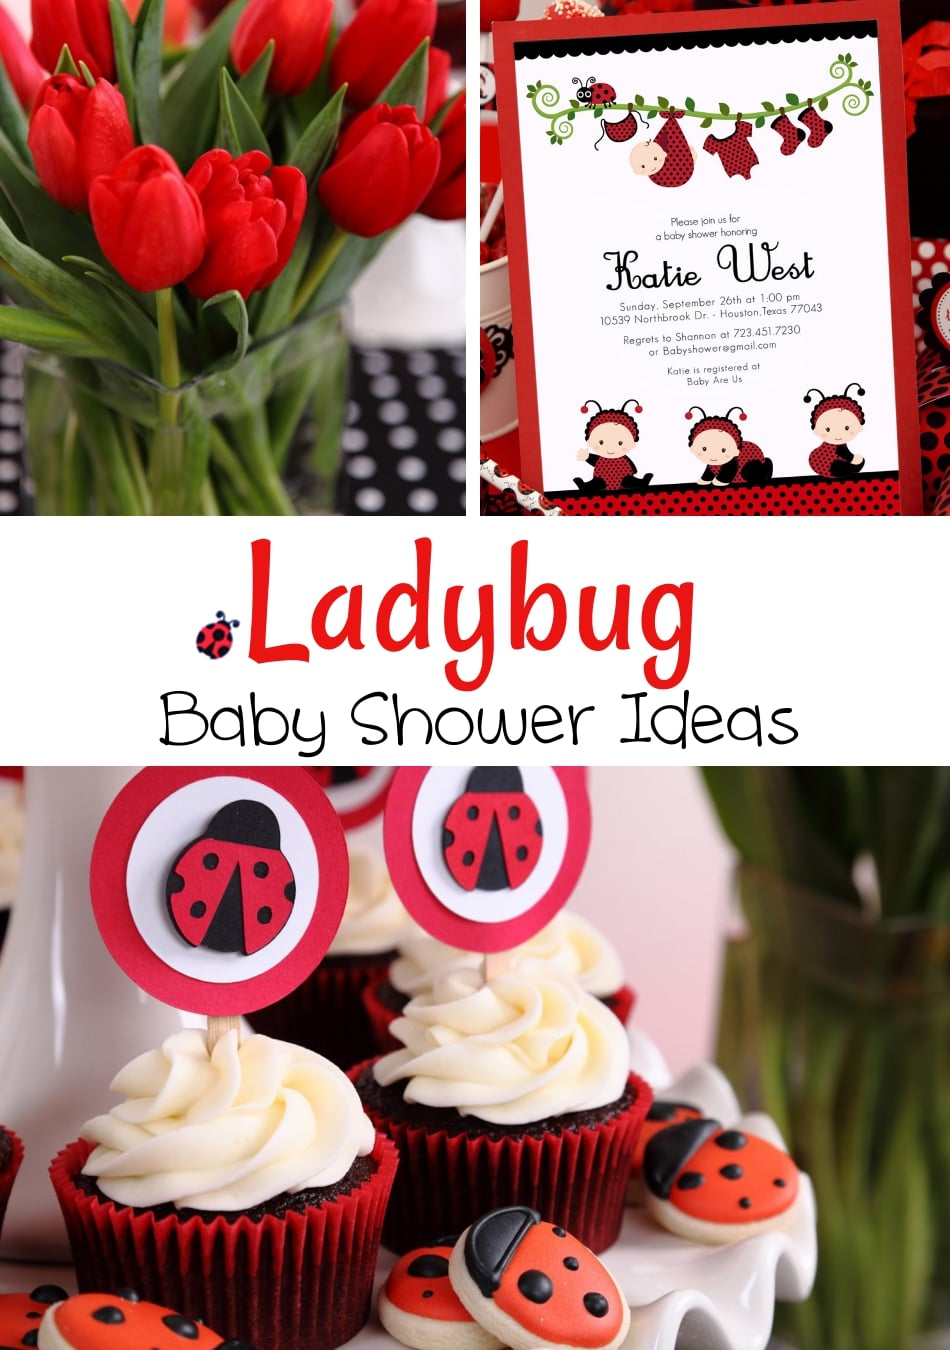 ladybug baby shower ideas